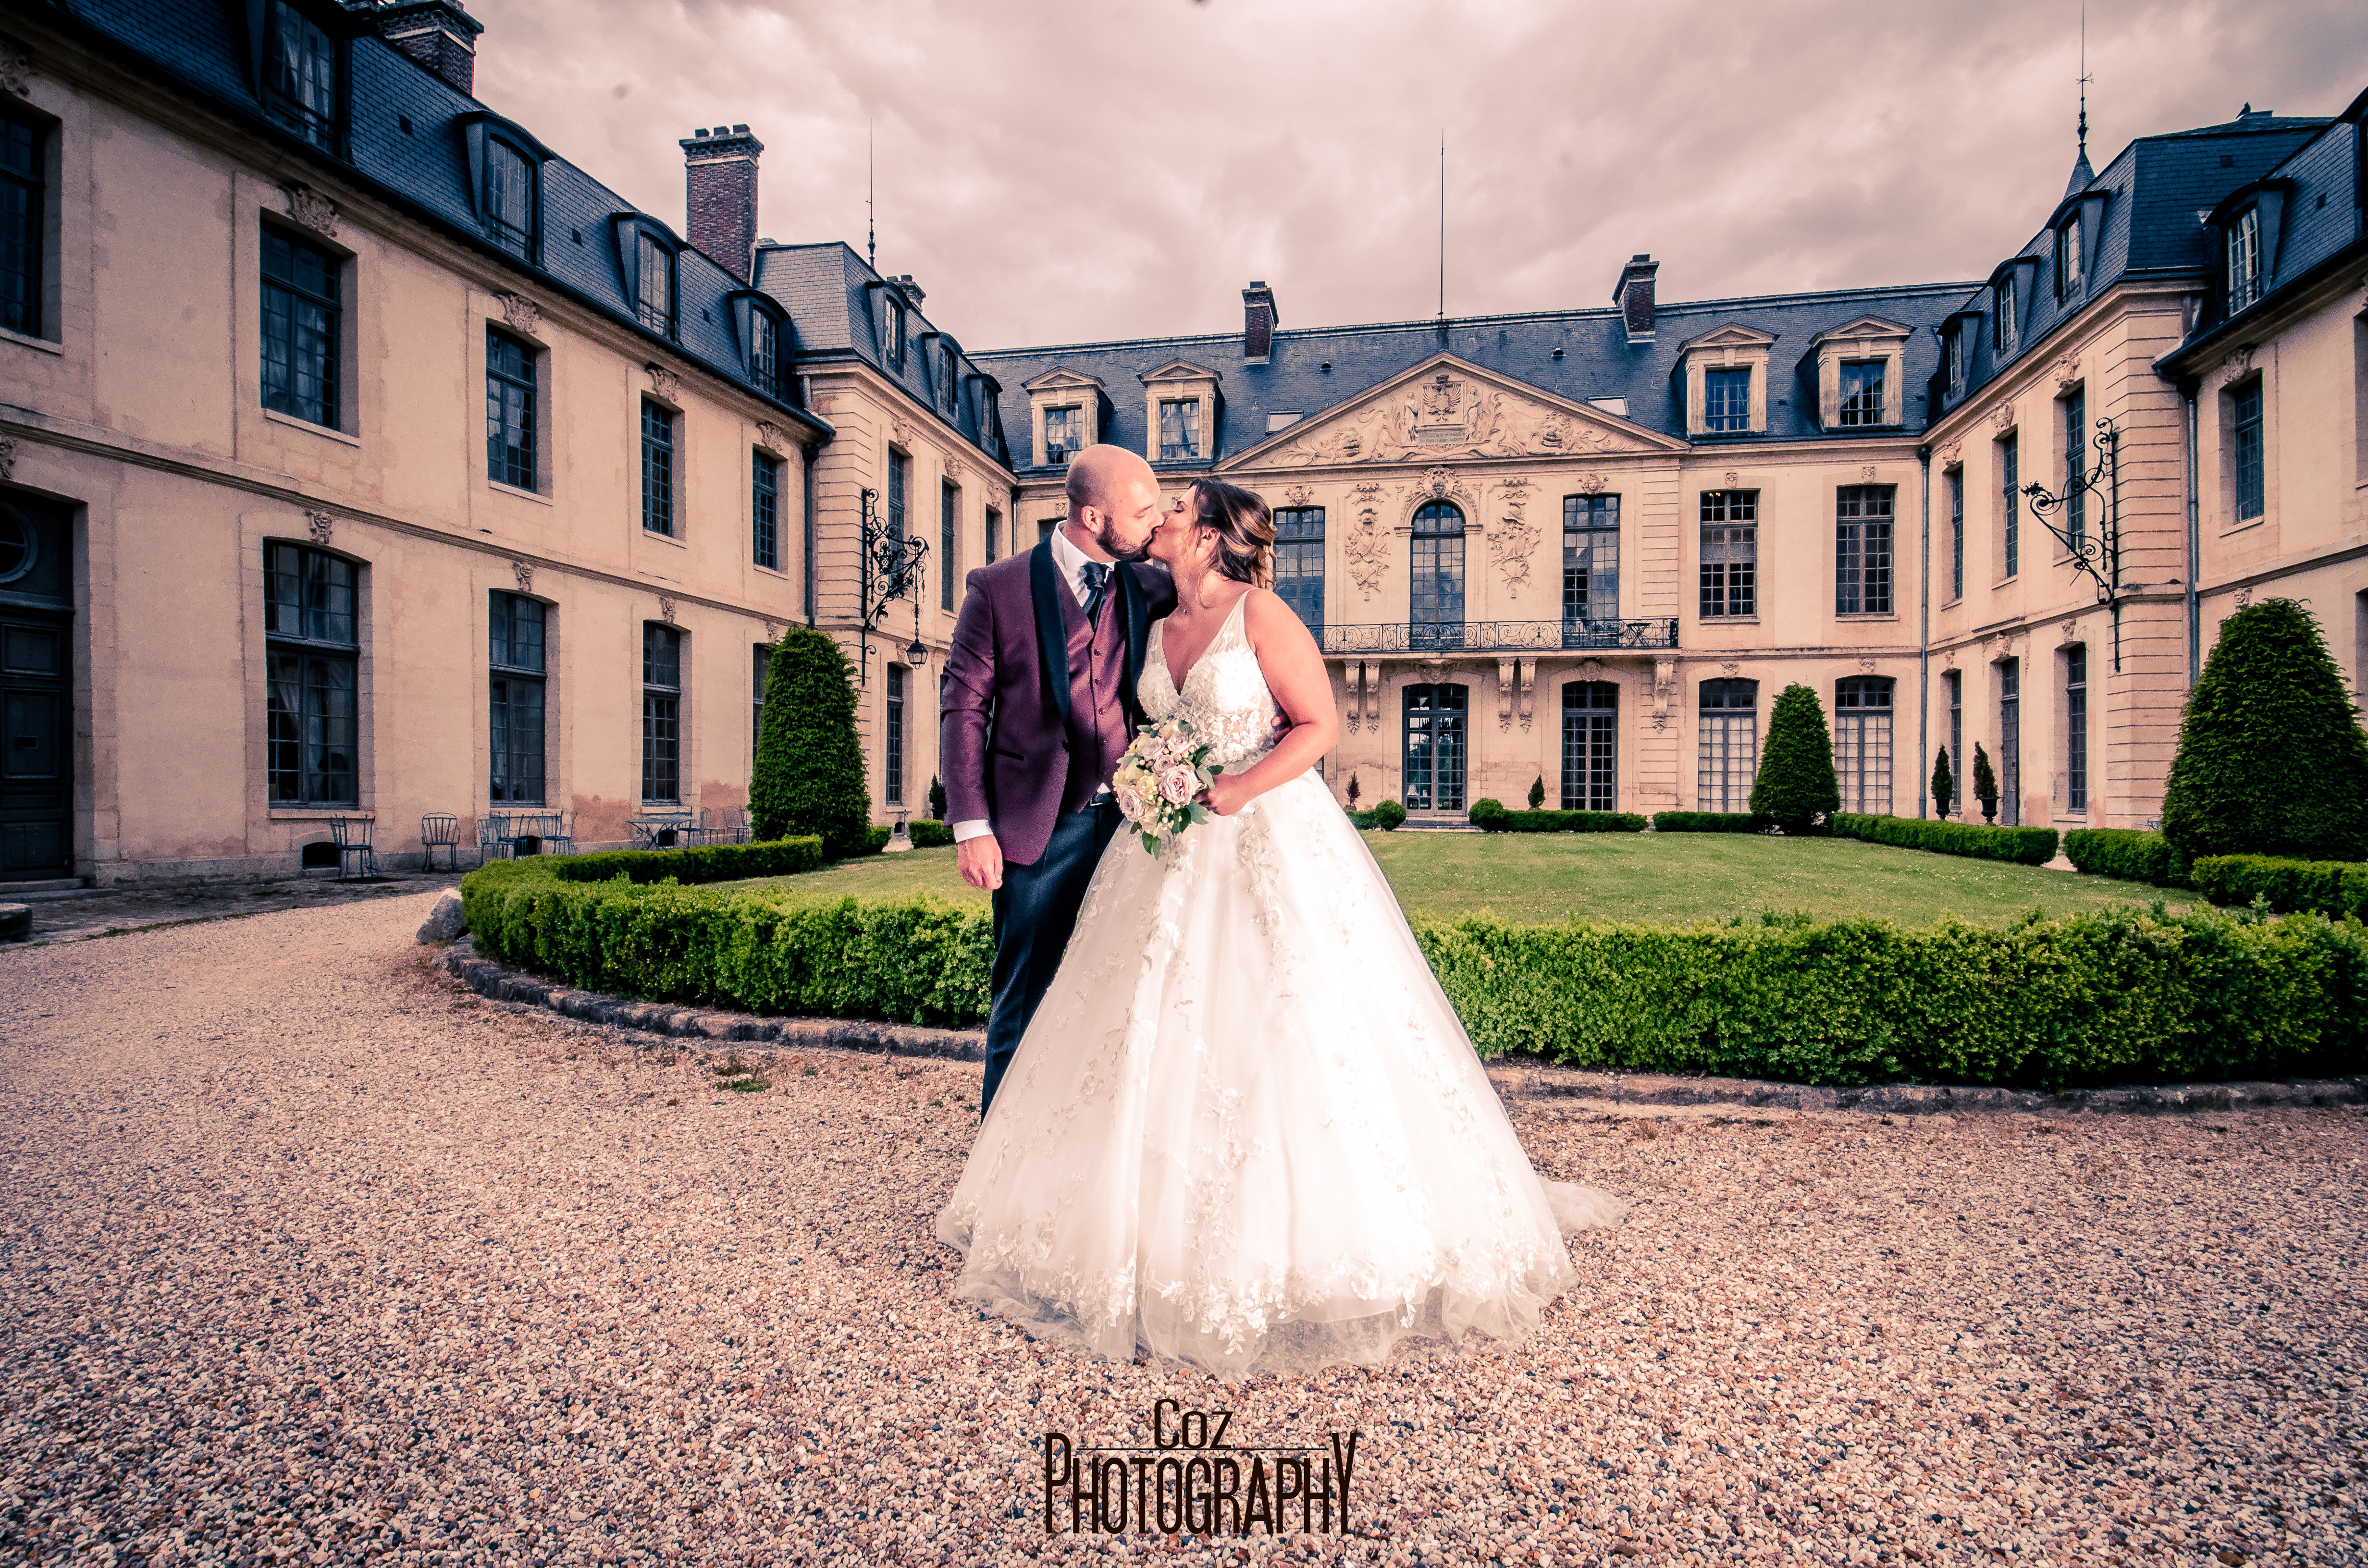 Mariage Floriane & Paul - Mr & Mme-4